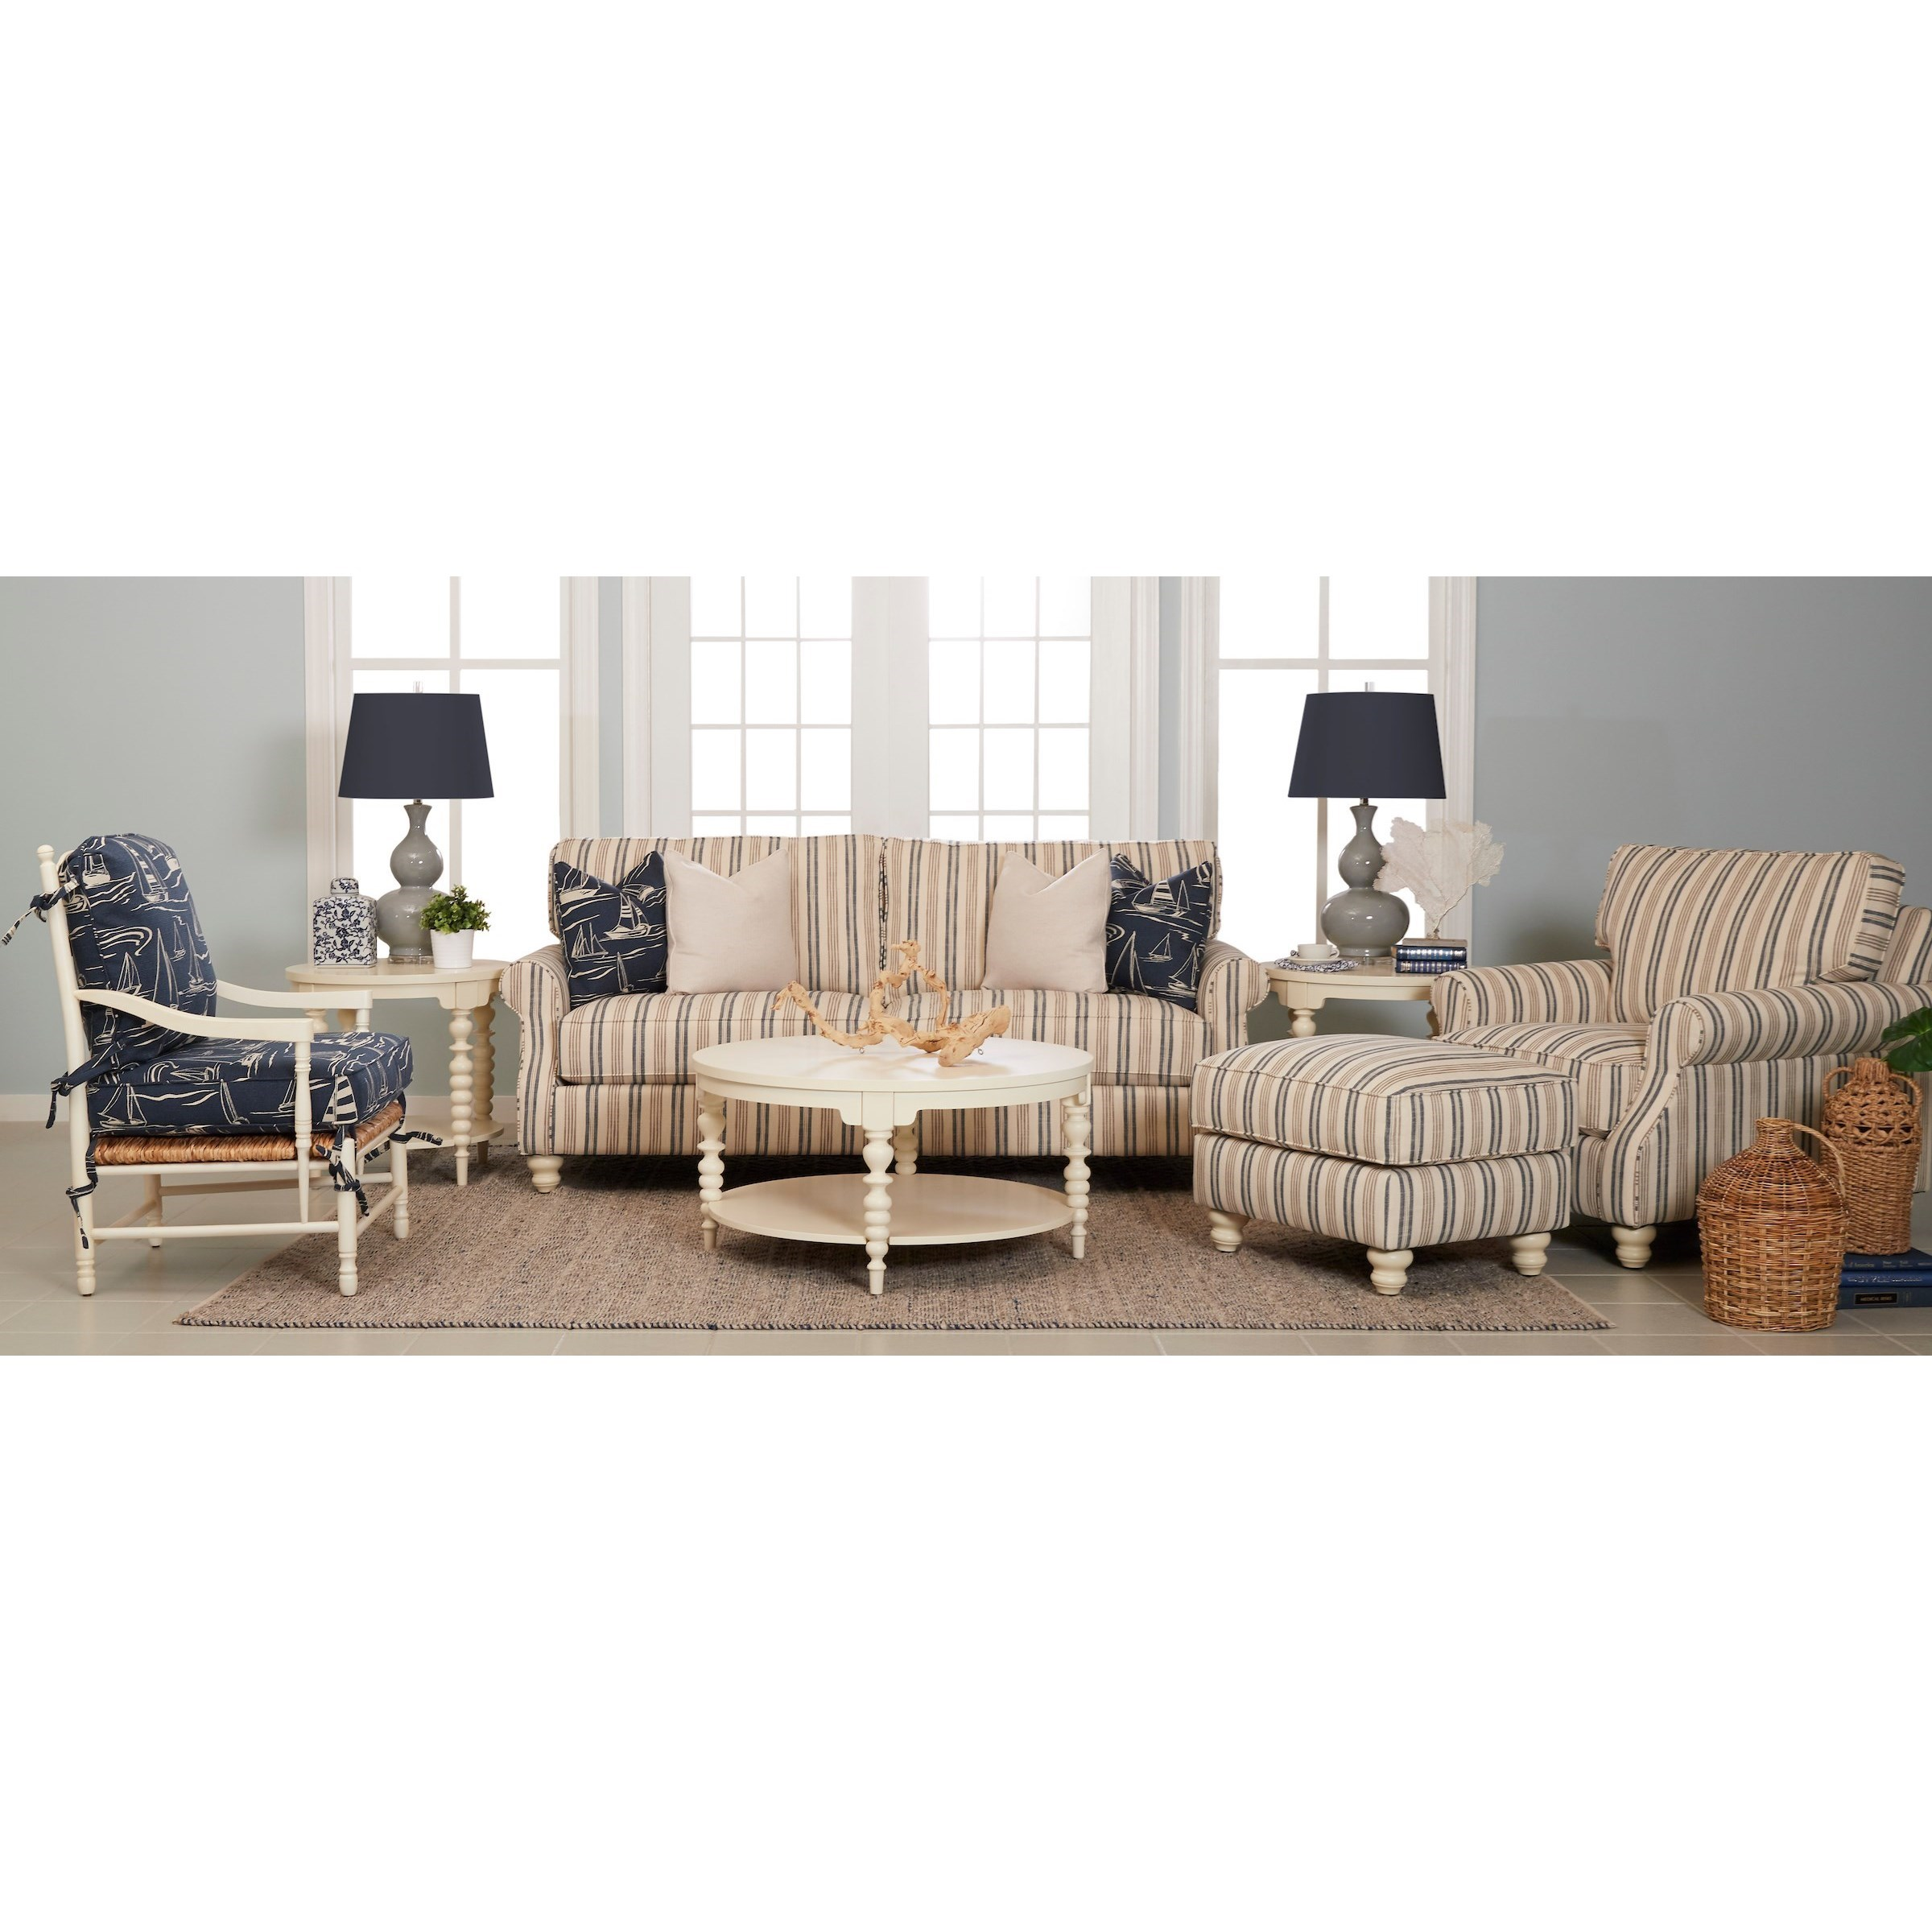 Tifton Living Room Group by Klaussner at Johnny Janosik